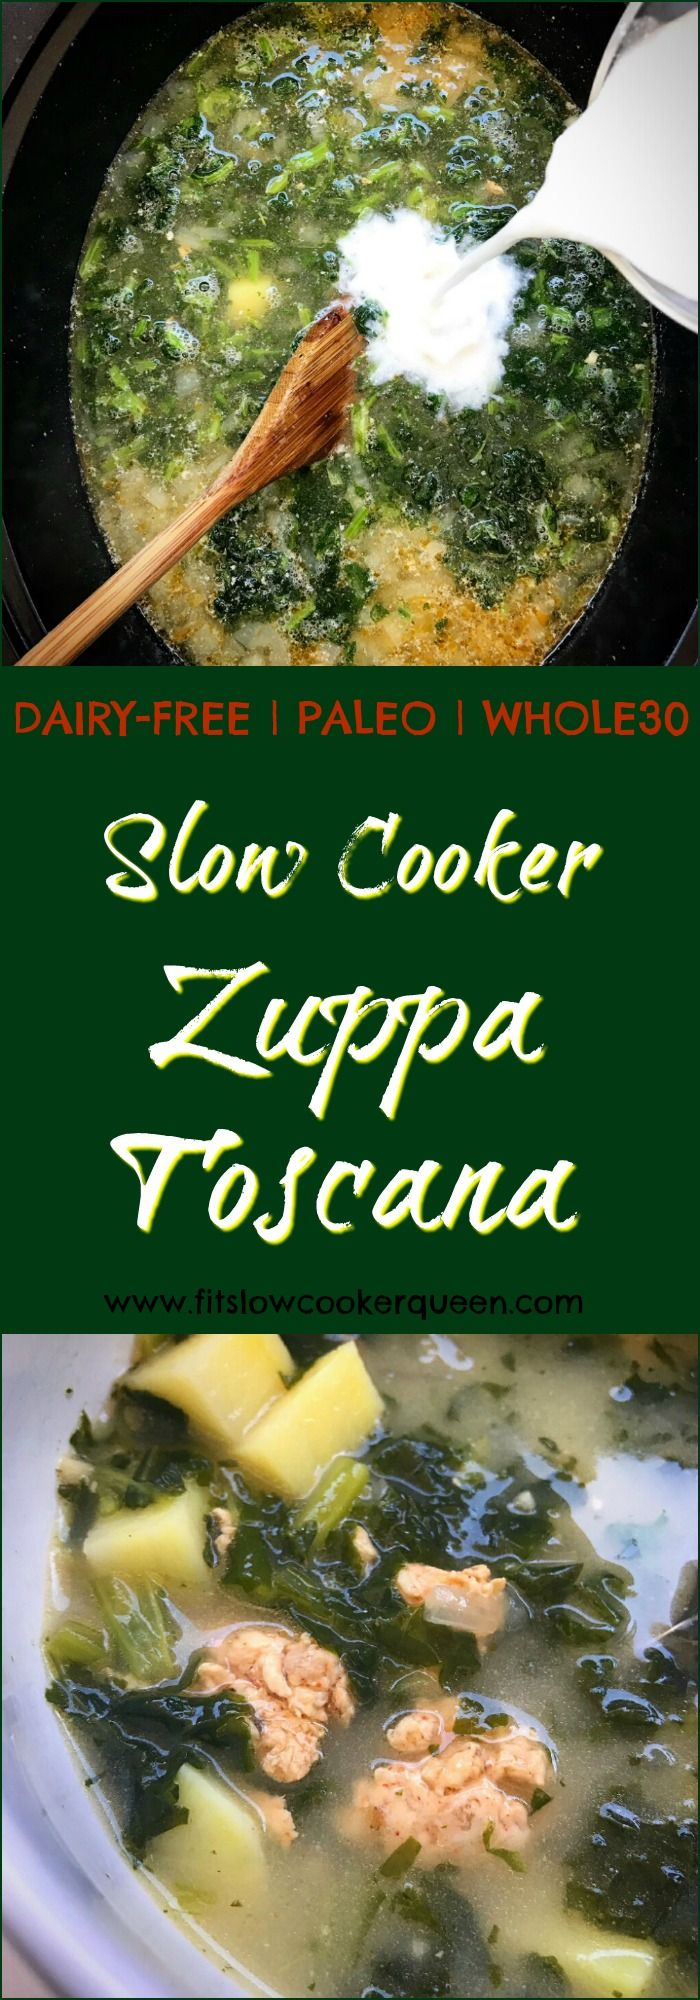 slow cooker crockpot paleo whole30 - Zuppa toscana is a simple soup using sausage, kale, and potatoes. This cleaned up version is paleo, whole30, dairy-free, and cooks in your slow cooker in just a couple of hours.